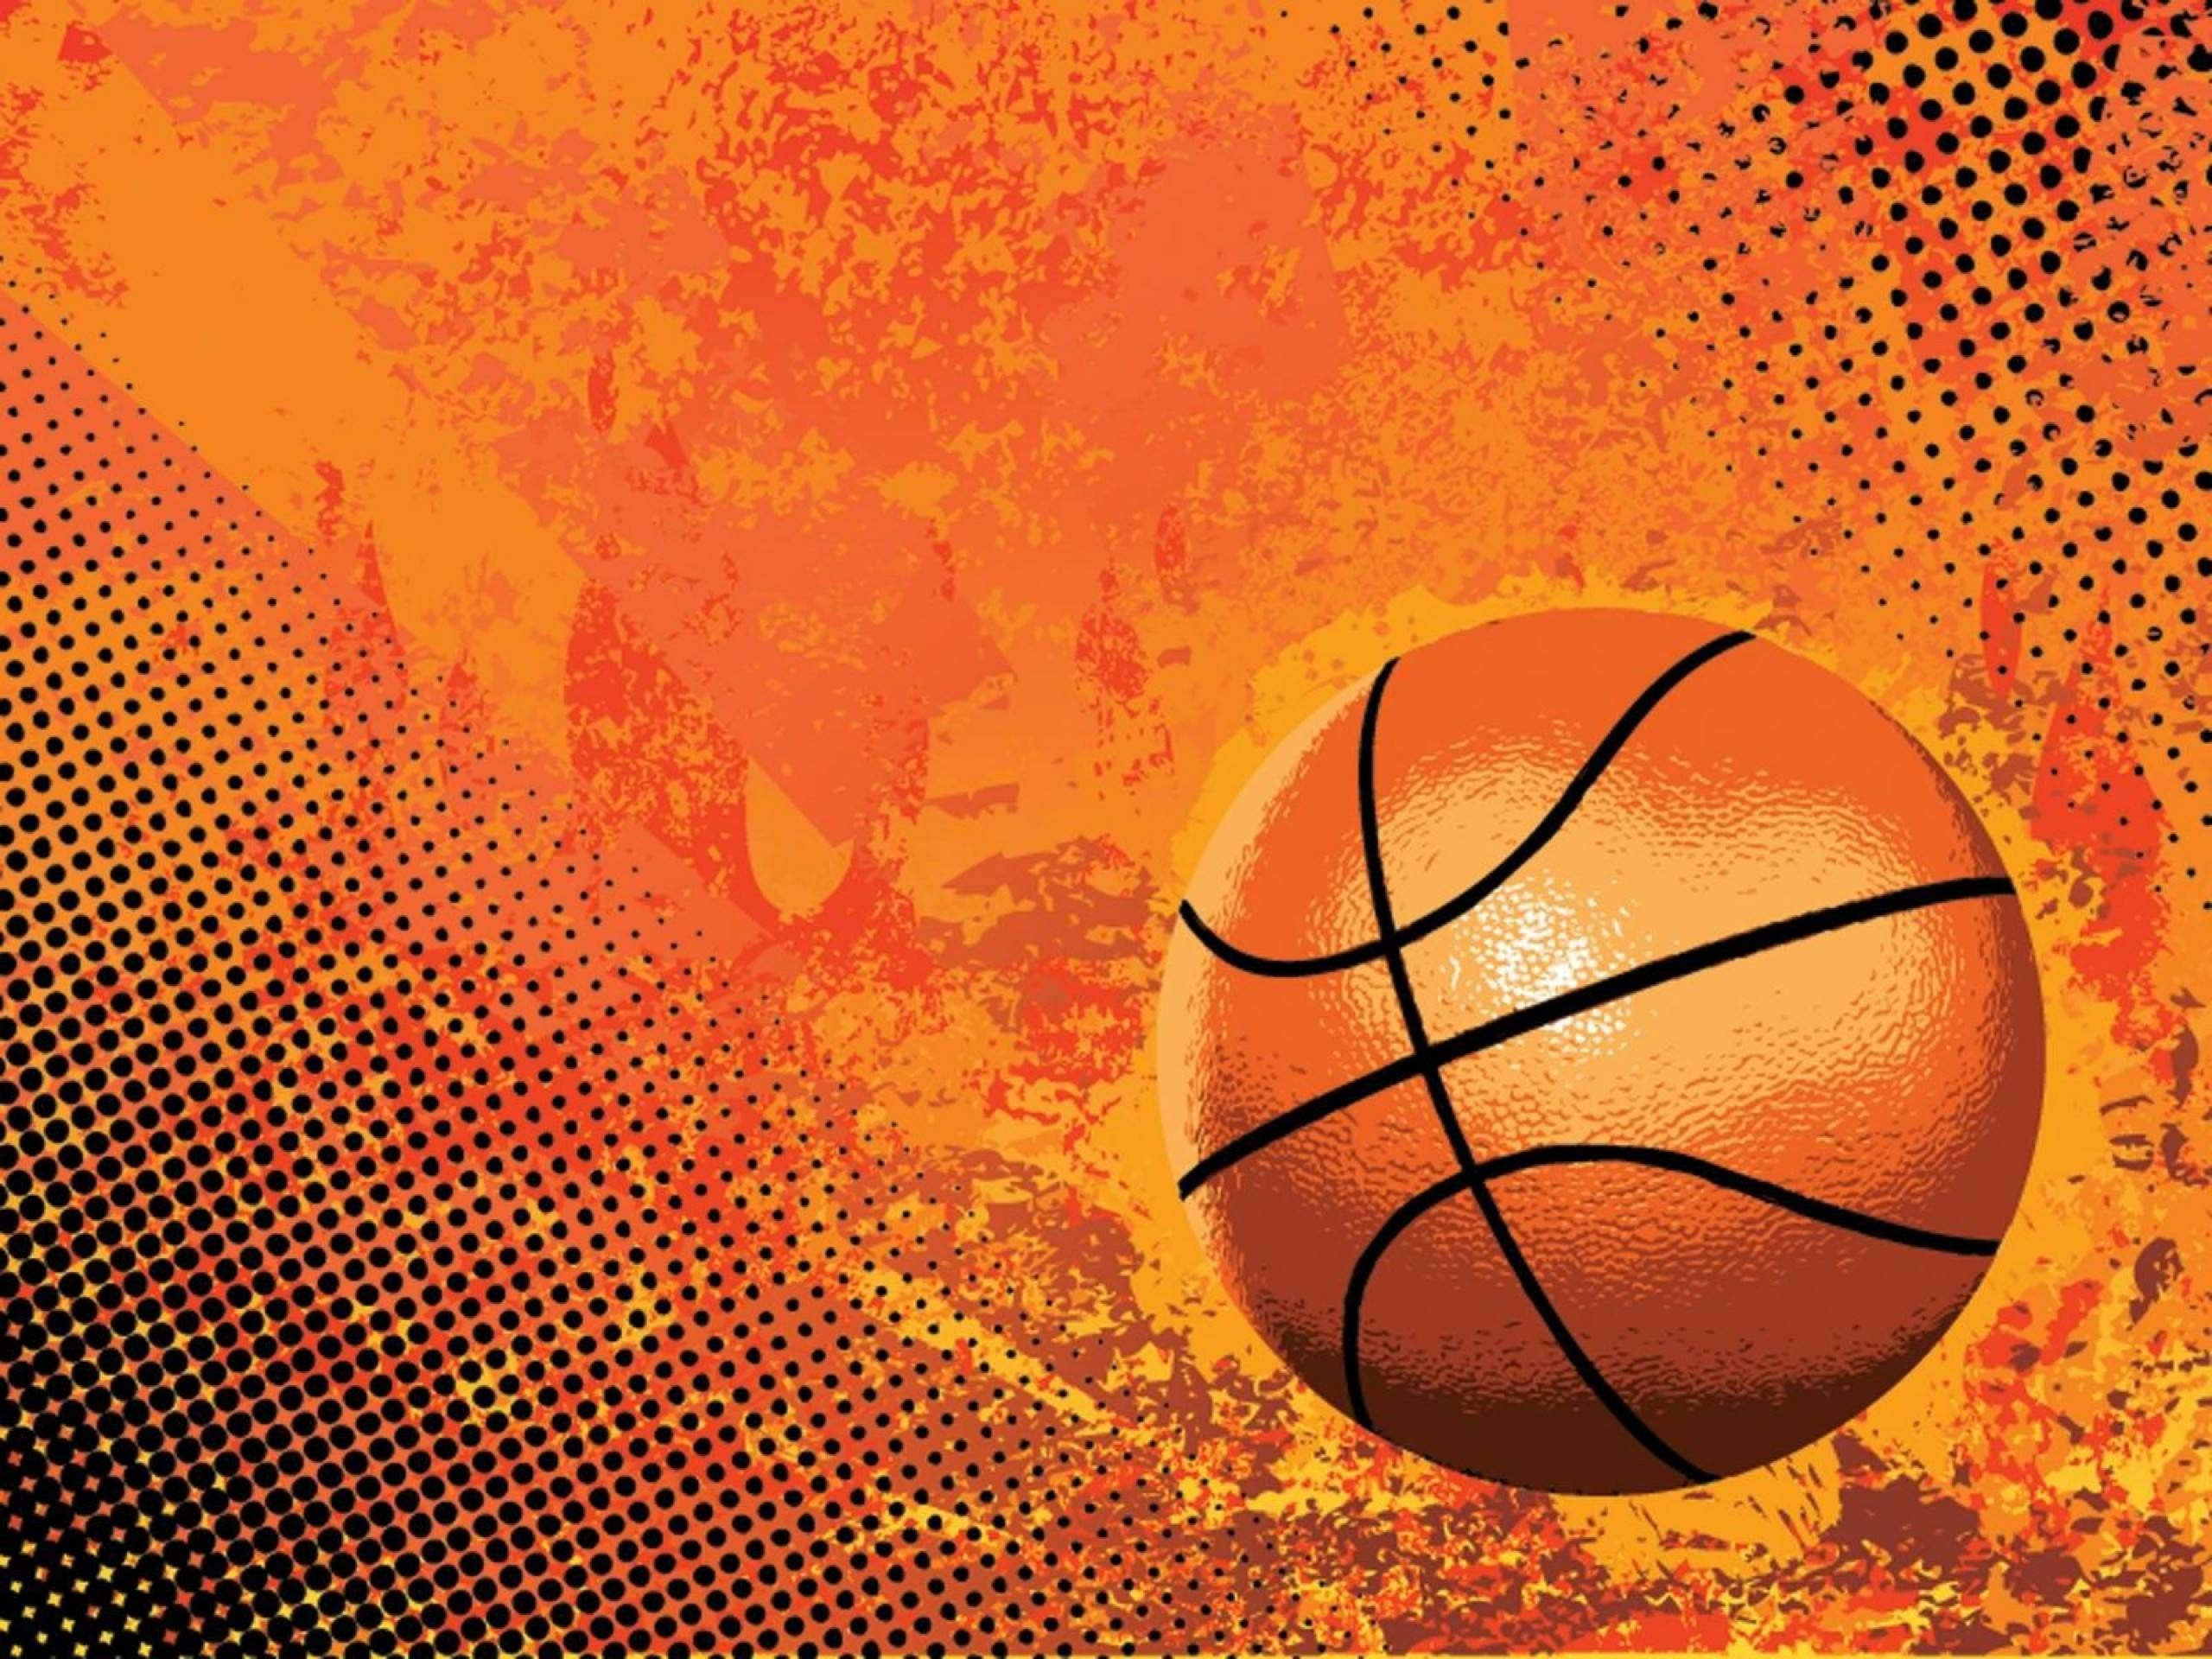 Basketball Background Basketball Background Basketball Wallpaper Basketball Wallpapers Hd